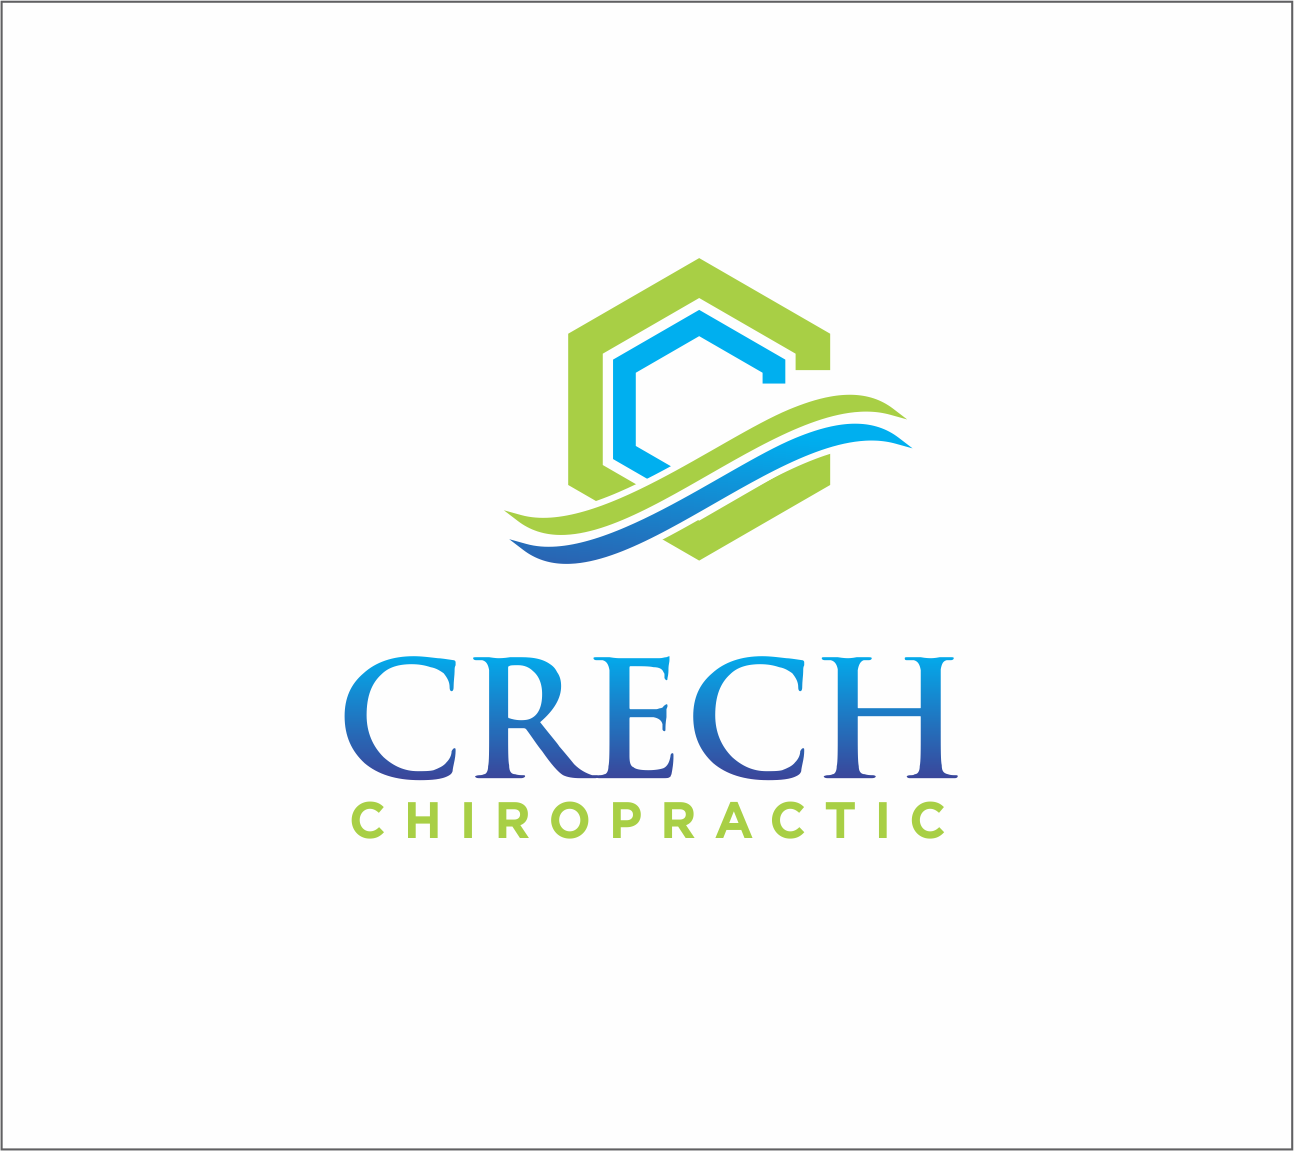 Logo Design by Armada Jamaluddin - Entry No. 89 in the Logo Design Contest Imaginative Logo Design for Creech Chiropractic.